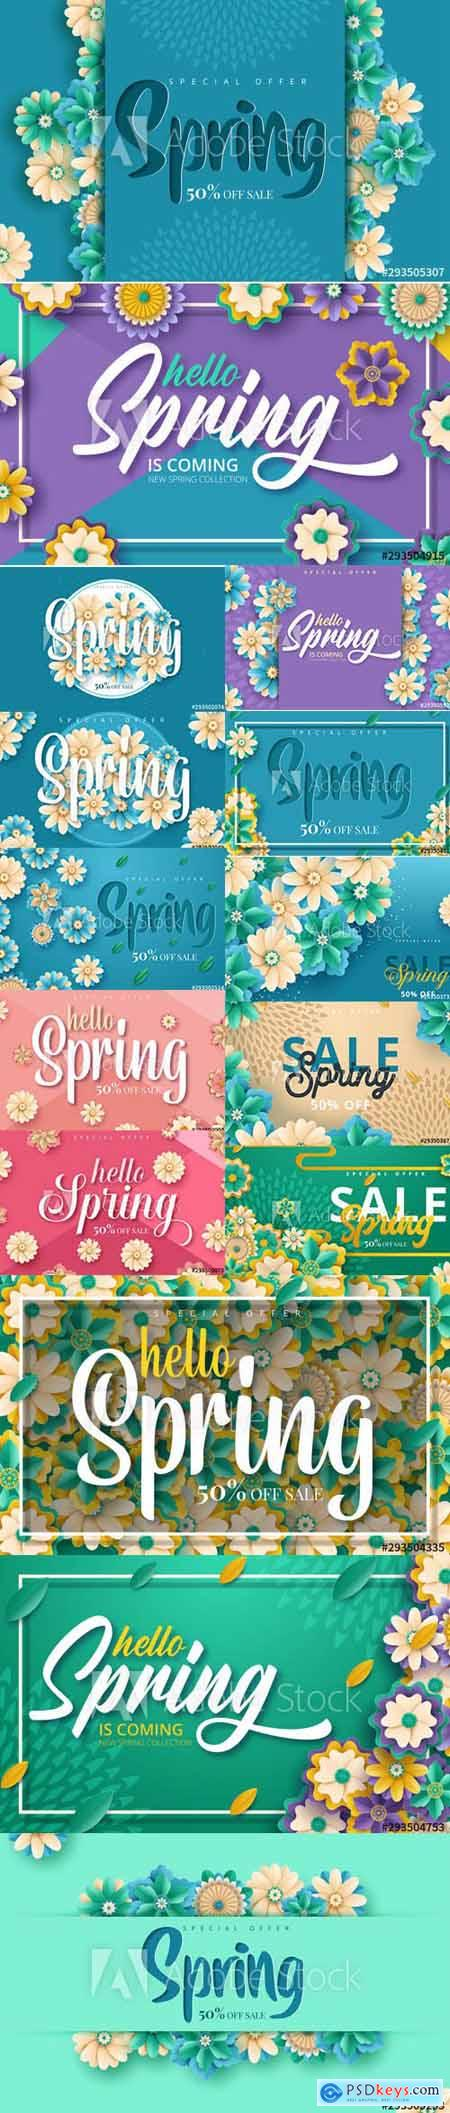 Set of Spring Sale Backgrounds with Flowers